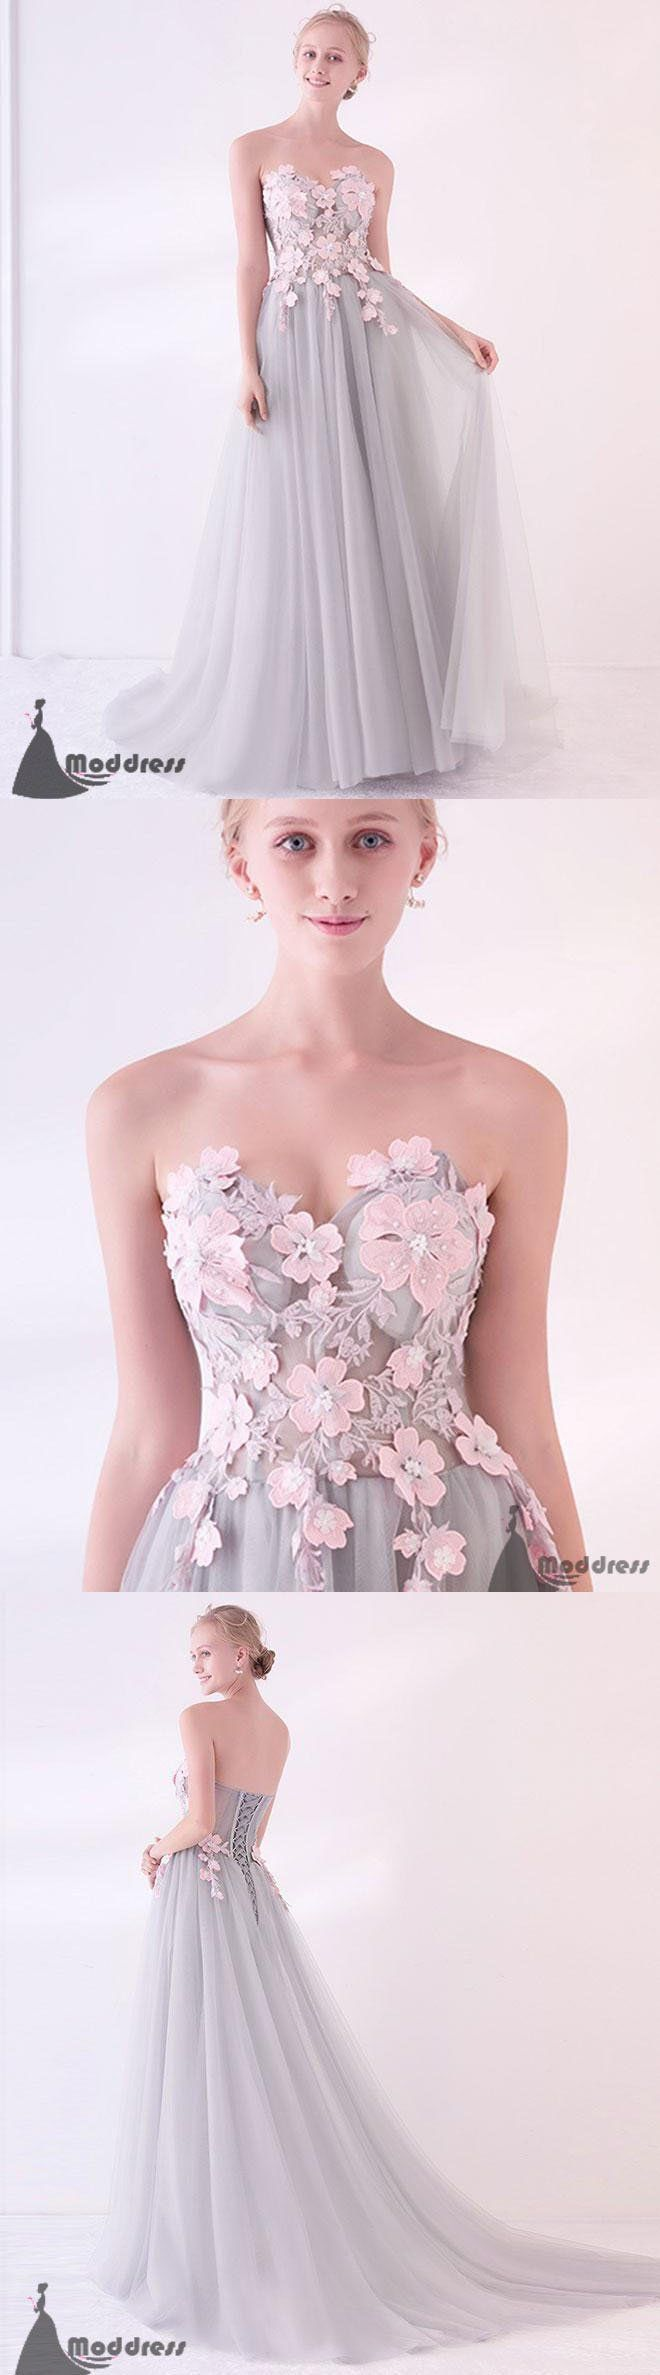 Grey Long Prom Dress Applique Tulle Evening Dress Sweetheart Formal ...